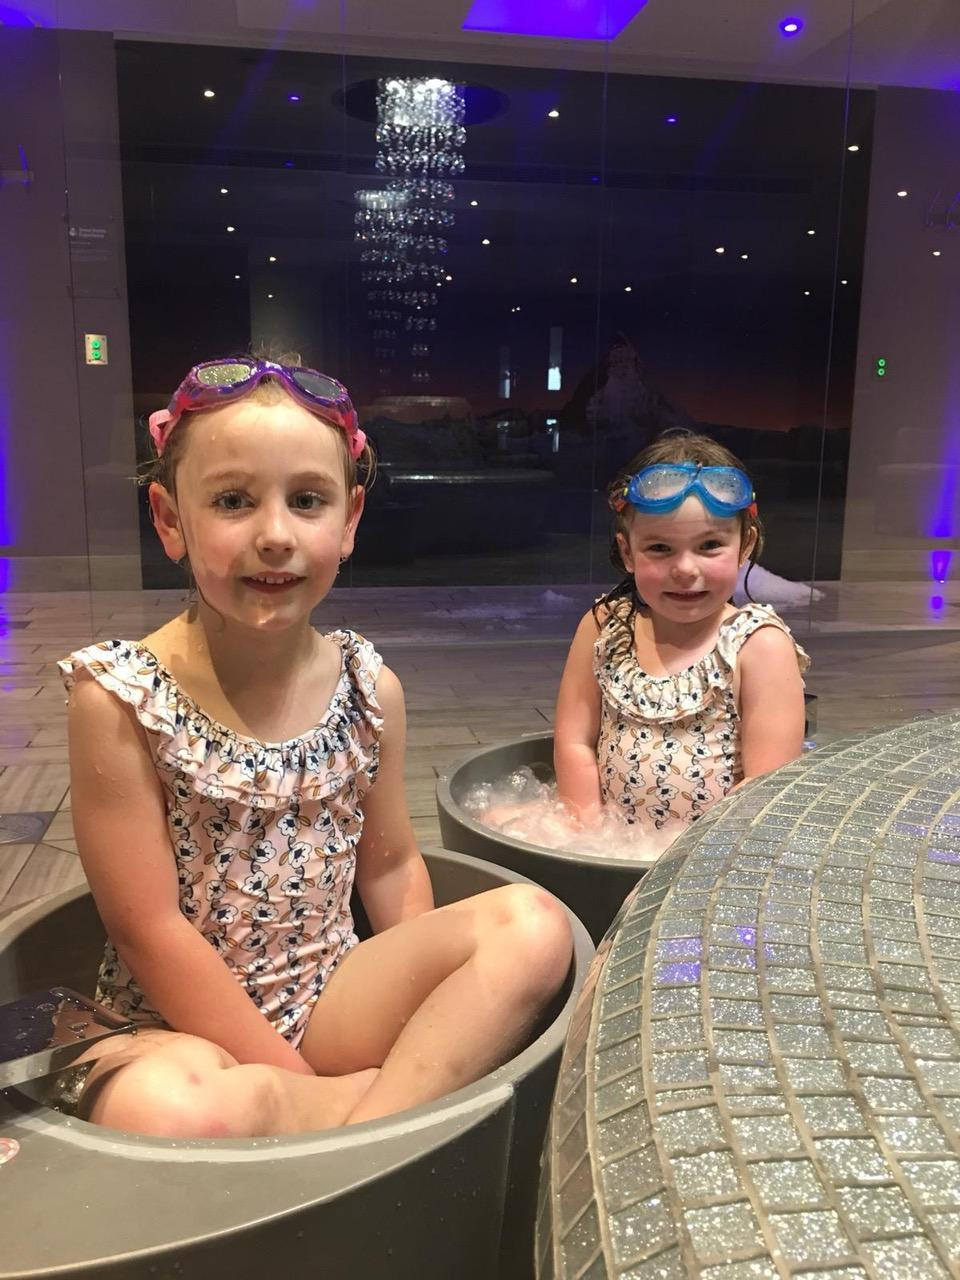 Following on the spa's recent Tween Spa nights, Tiny Spa was created to cater to an even younger demographic